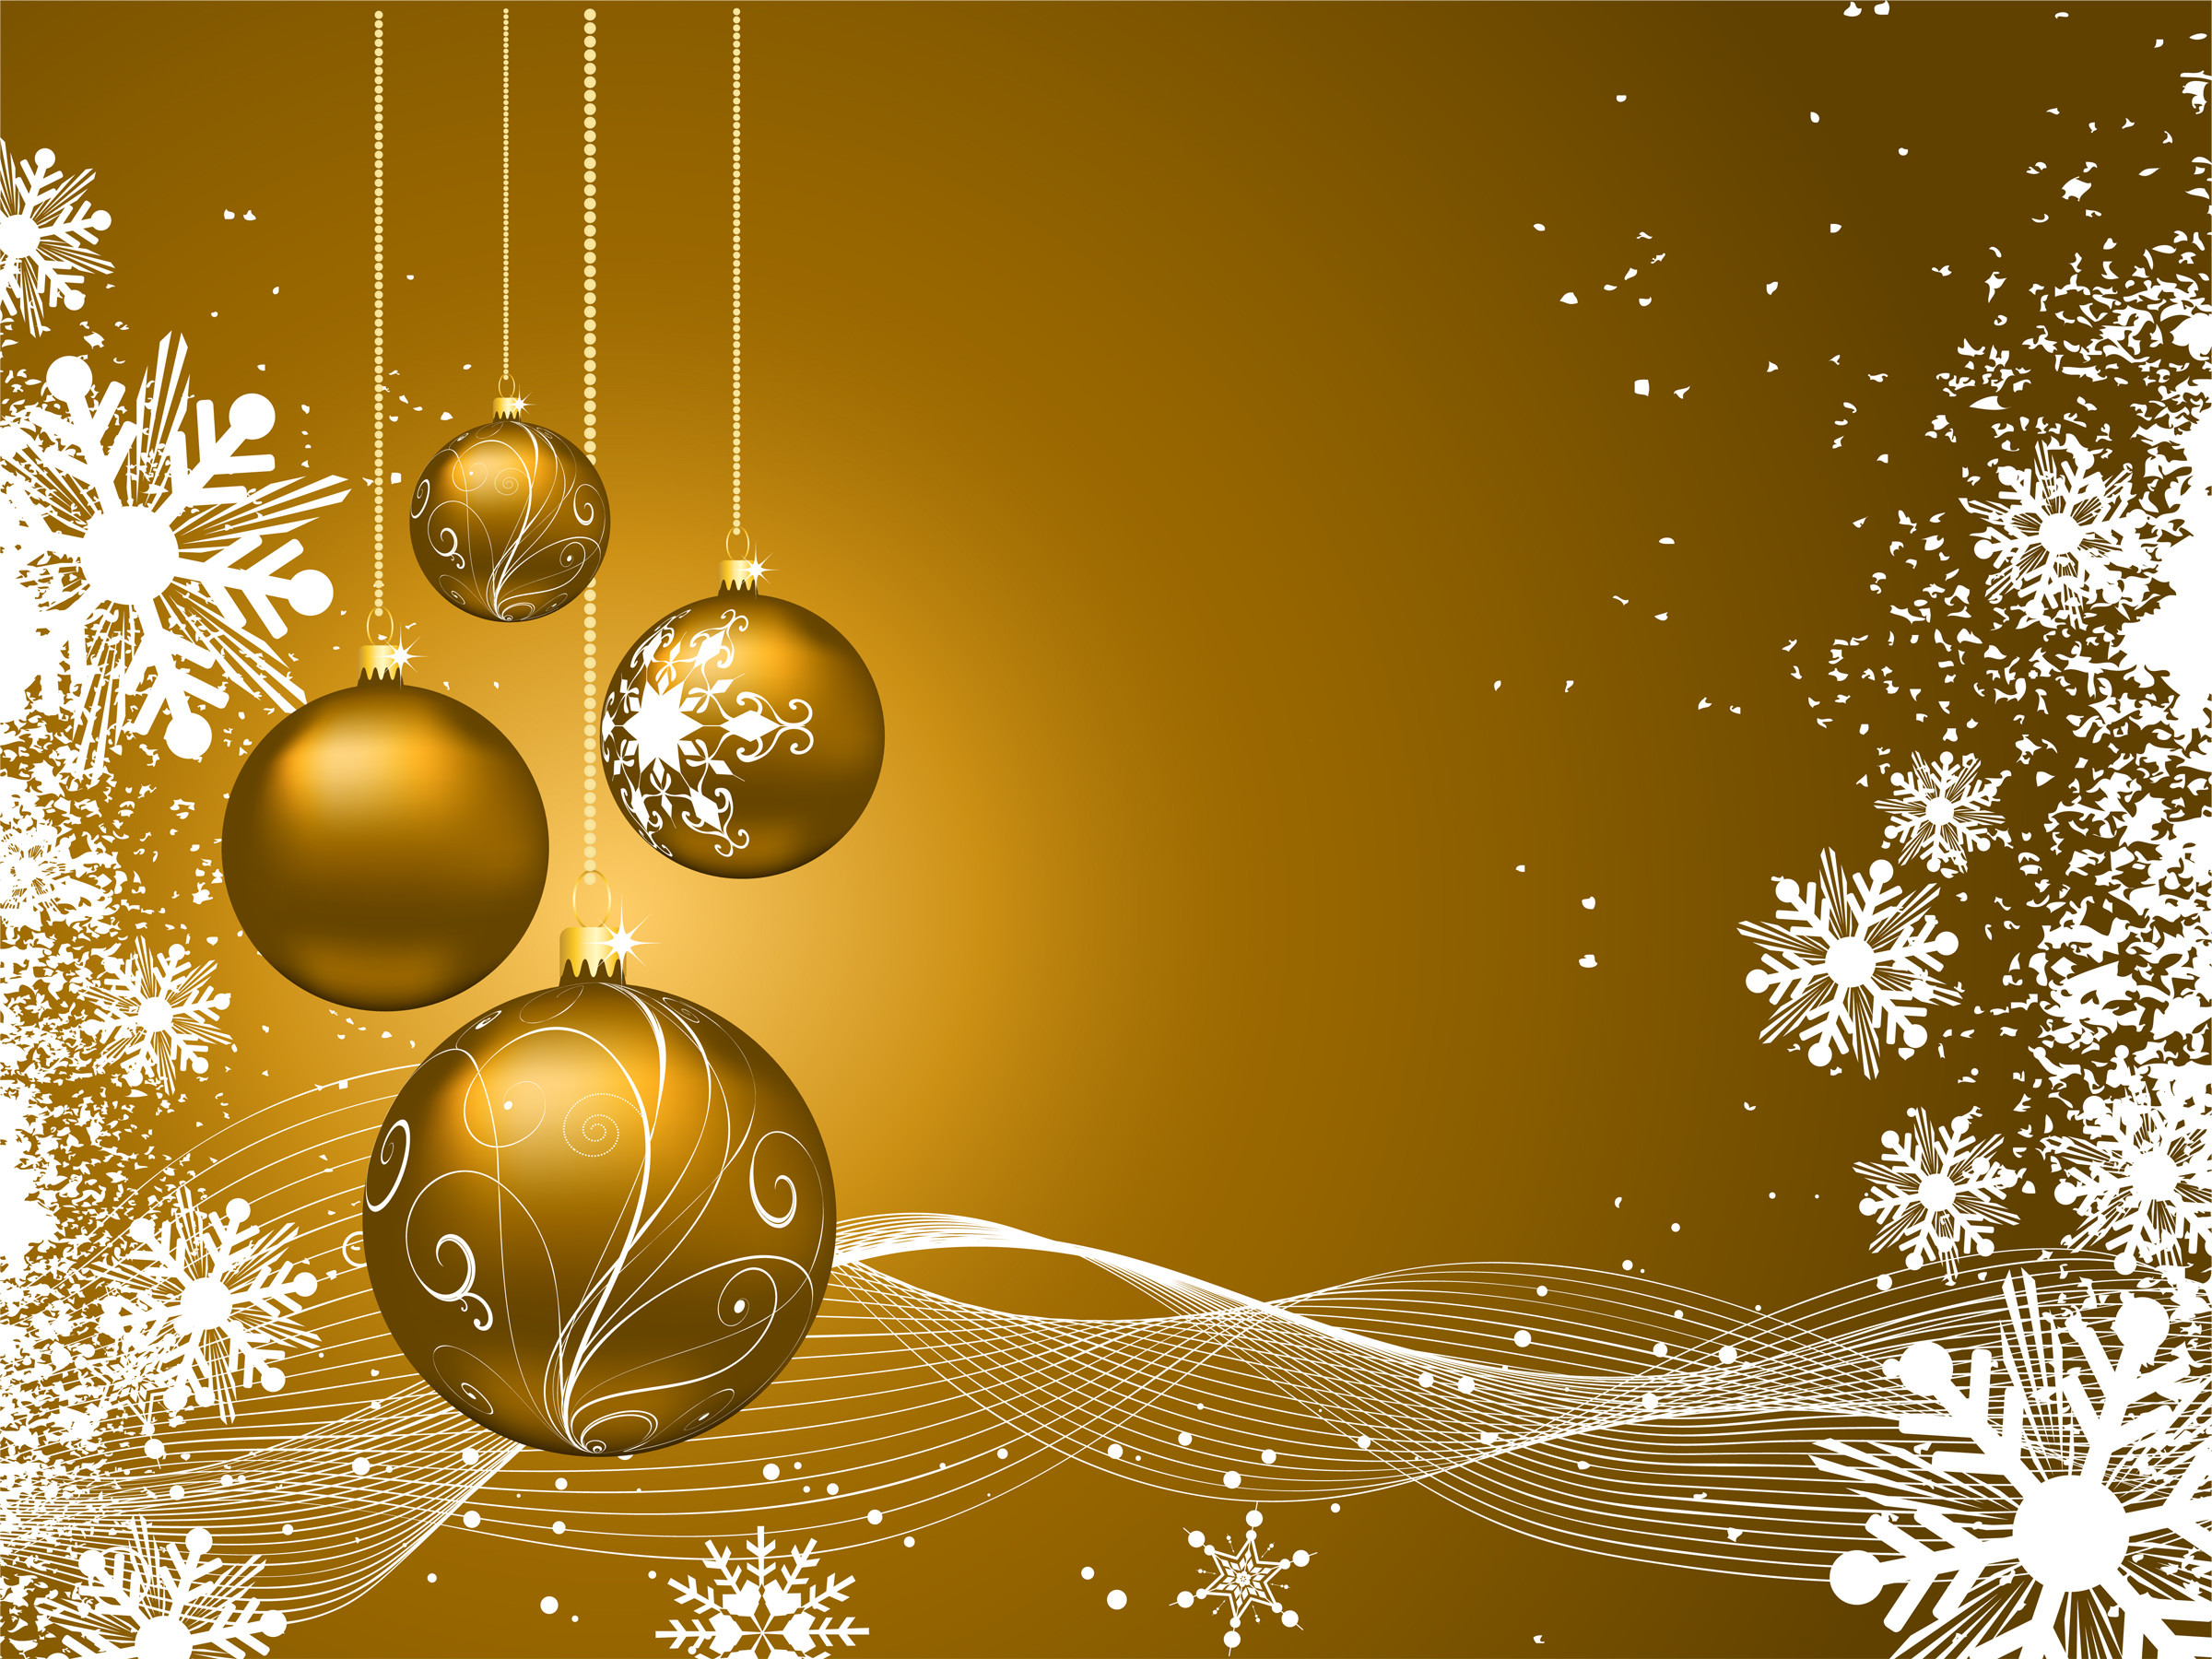 Cute Cool Wallpapers For Mobile Free Christmas Wallpapers Download In Hd Pixelstalk Net